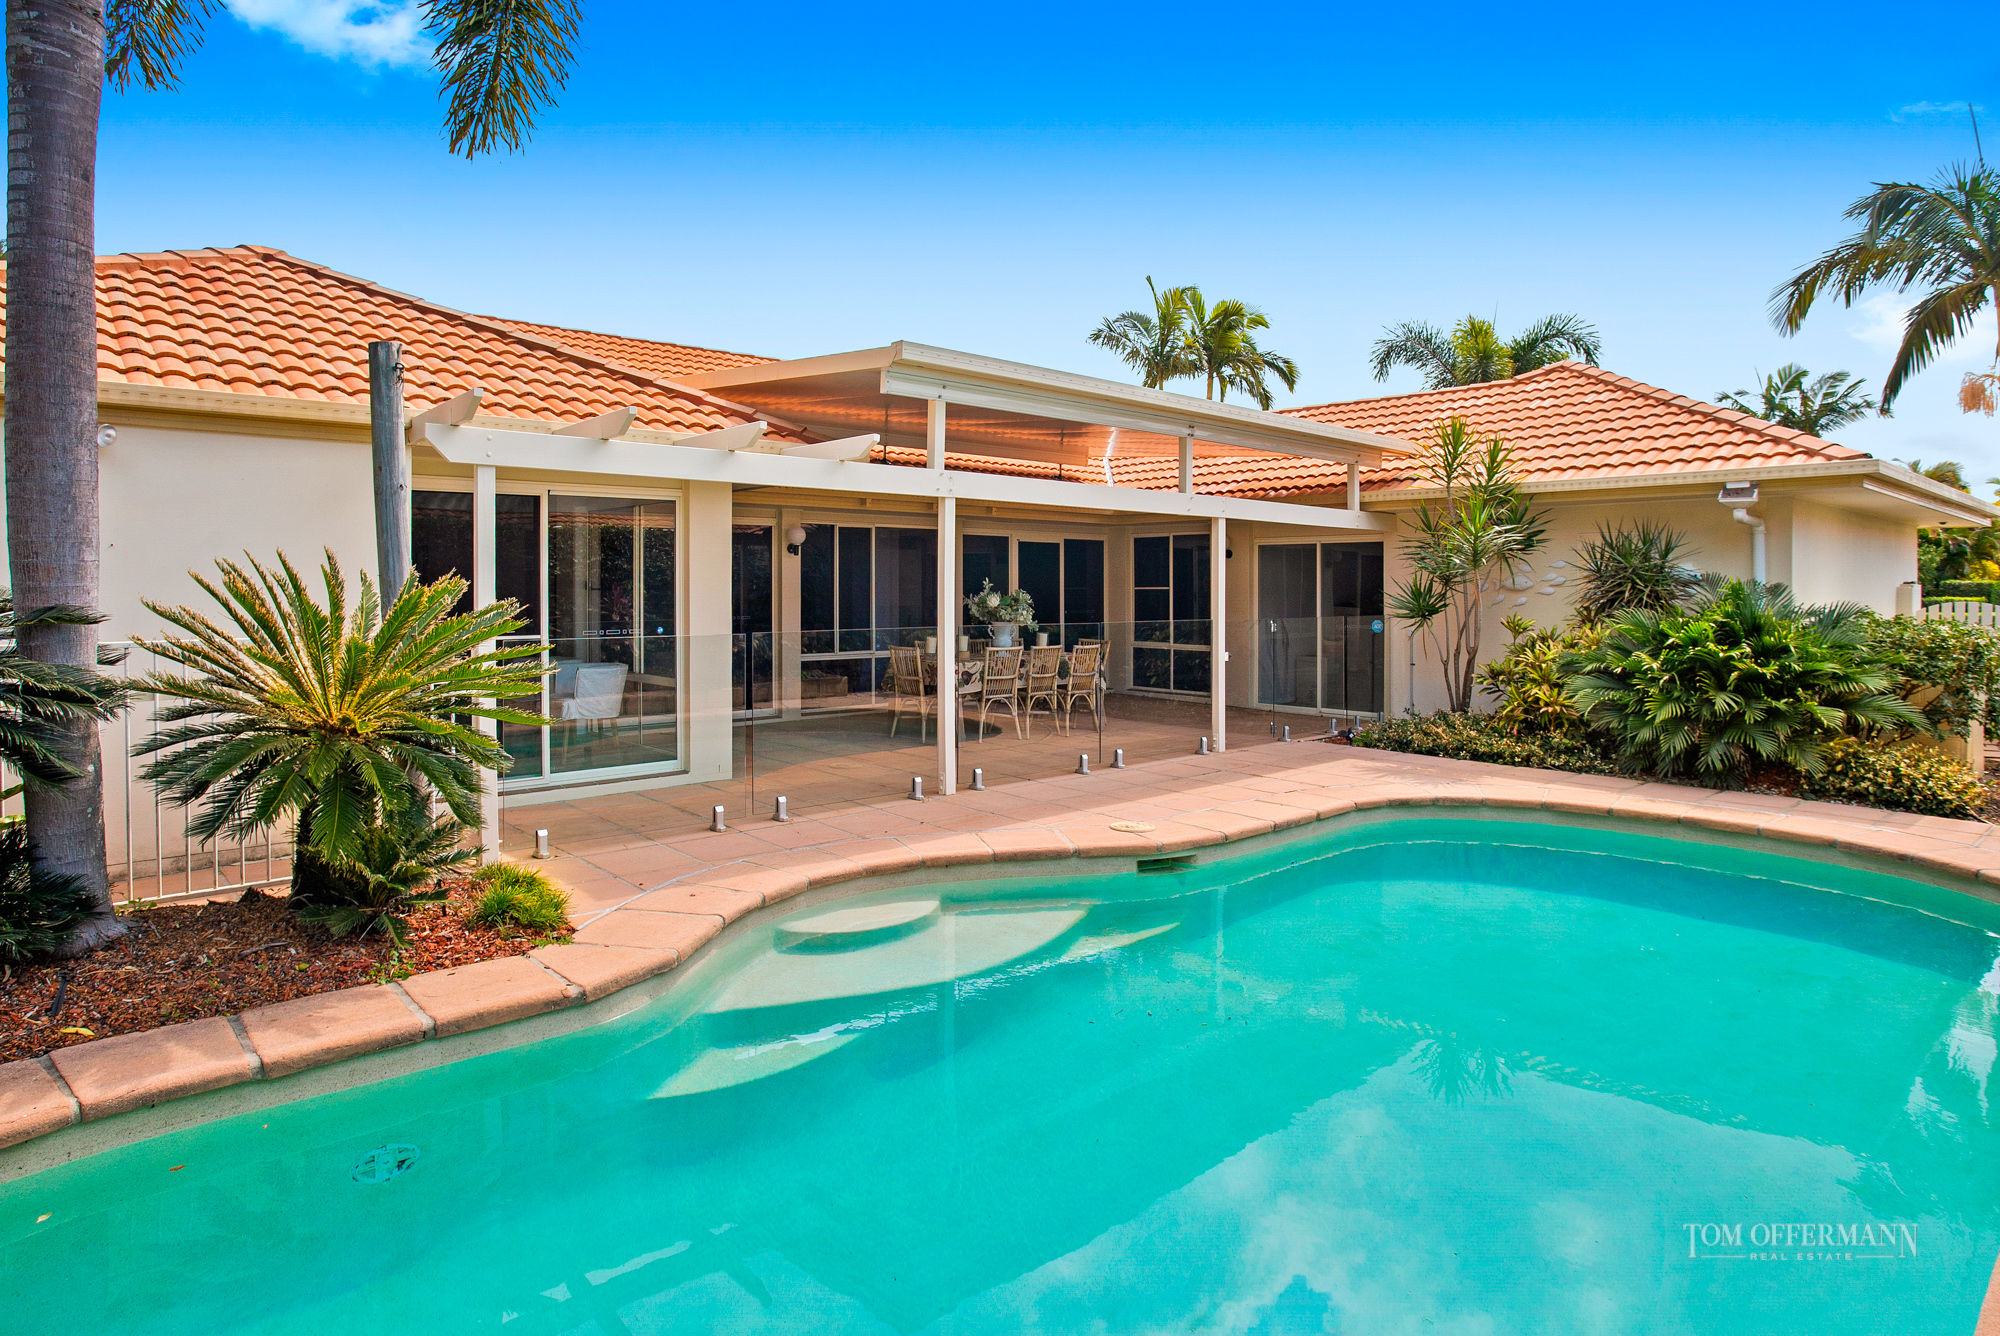 YOUR OPPORTUNITY TO SECURE A STYLISH SINGLE LEVEL HOME JUST MINUTES TO THE NOOSA RIVER